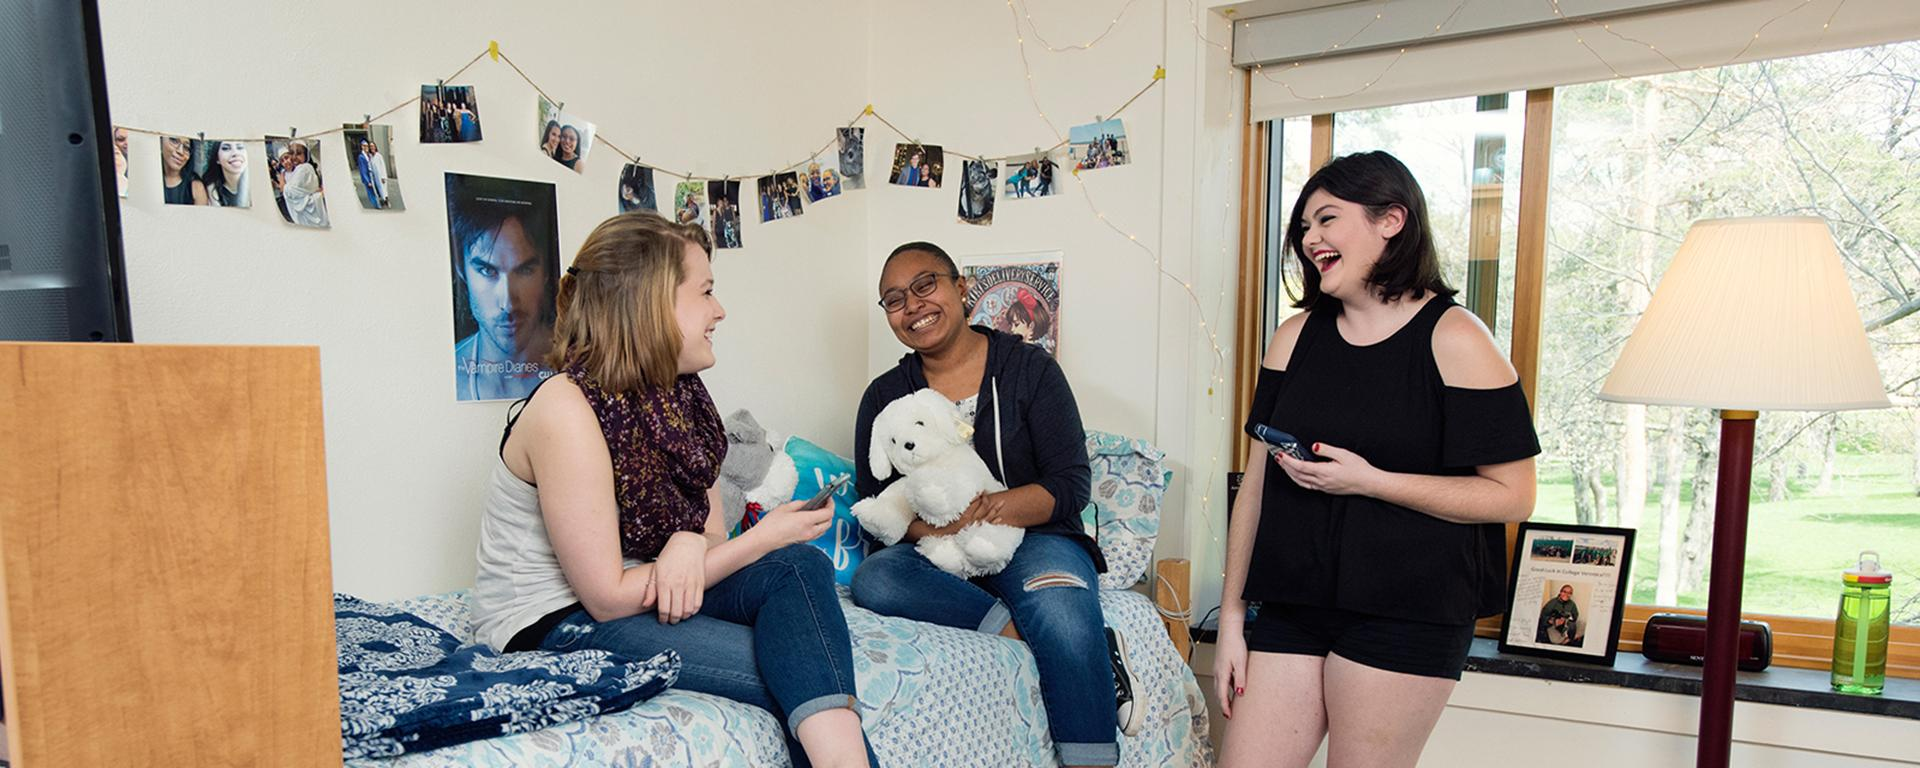 Students enjoying a bright residence hall